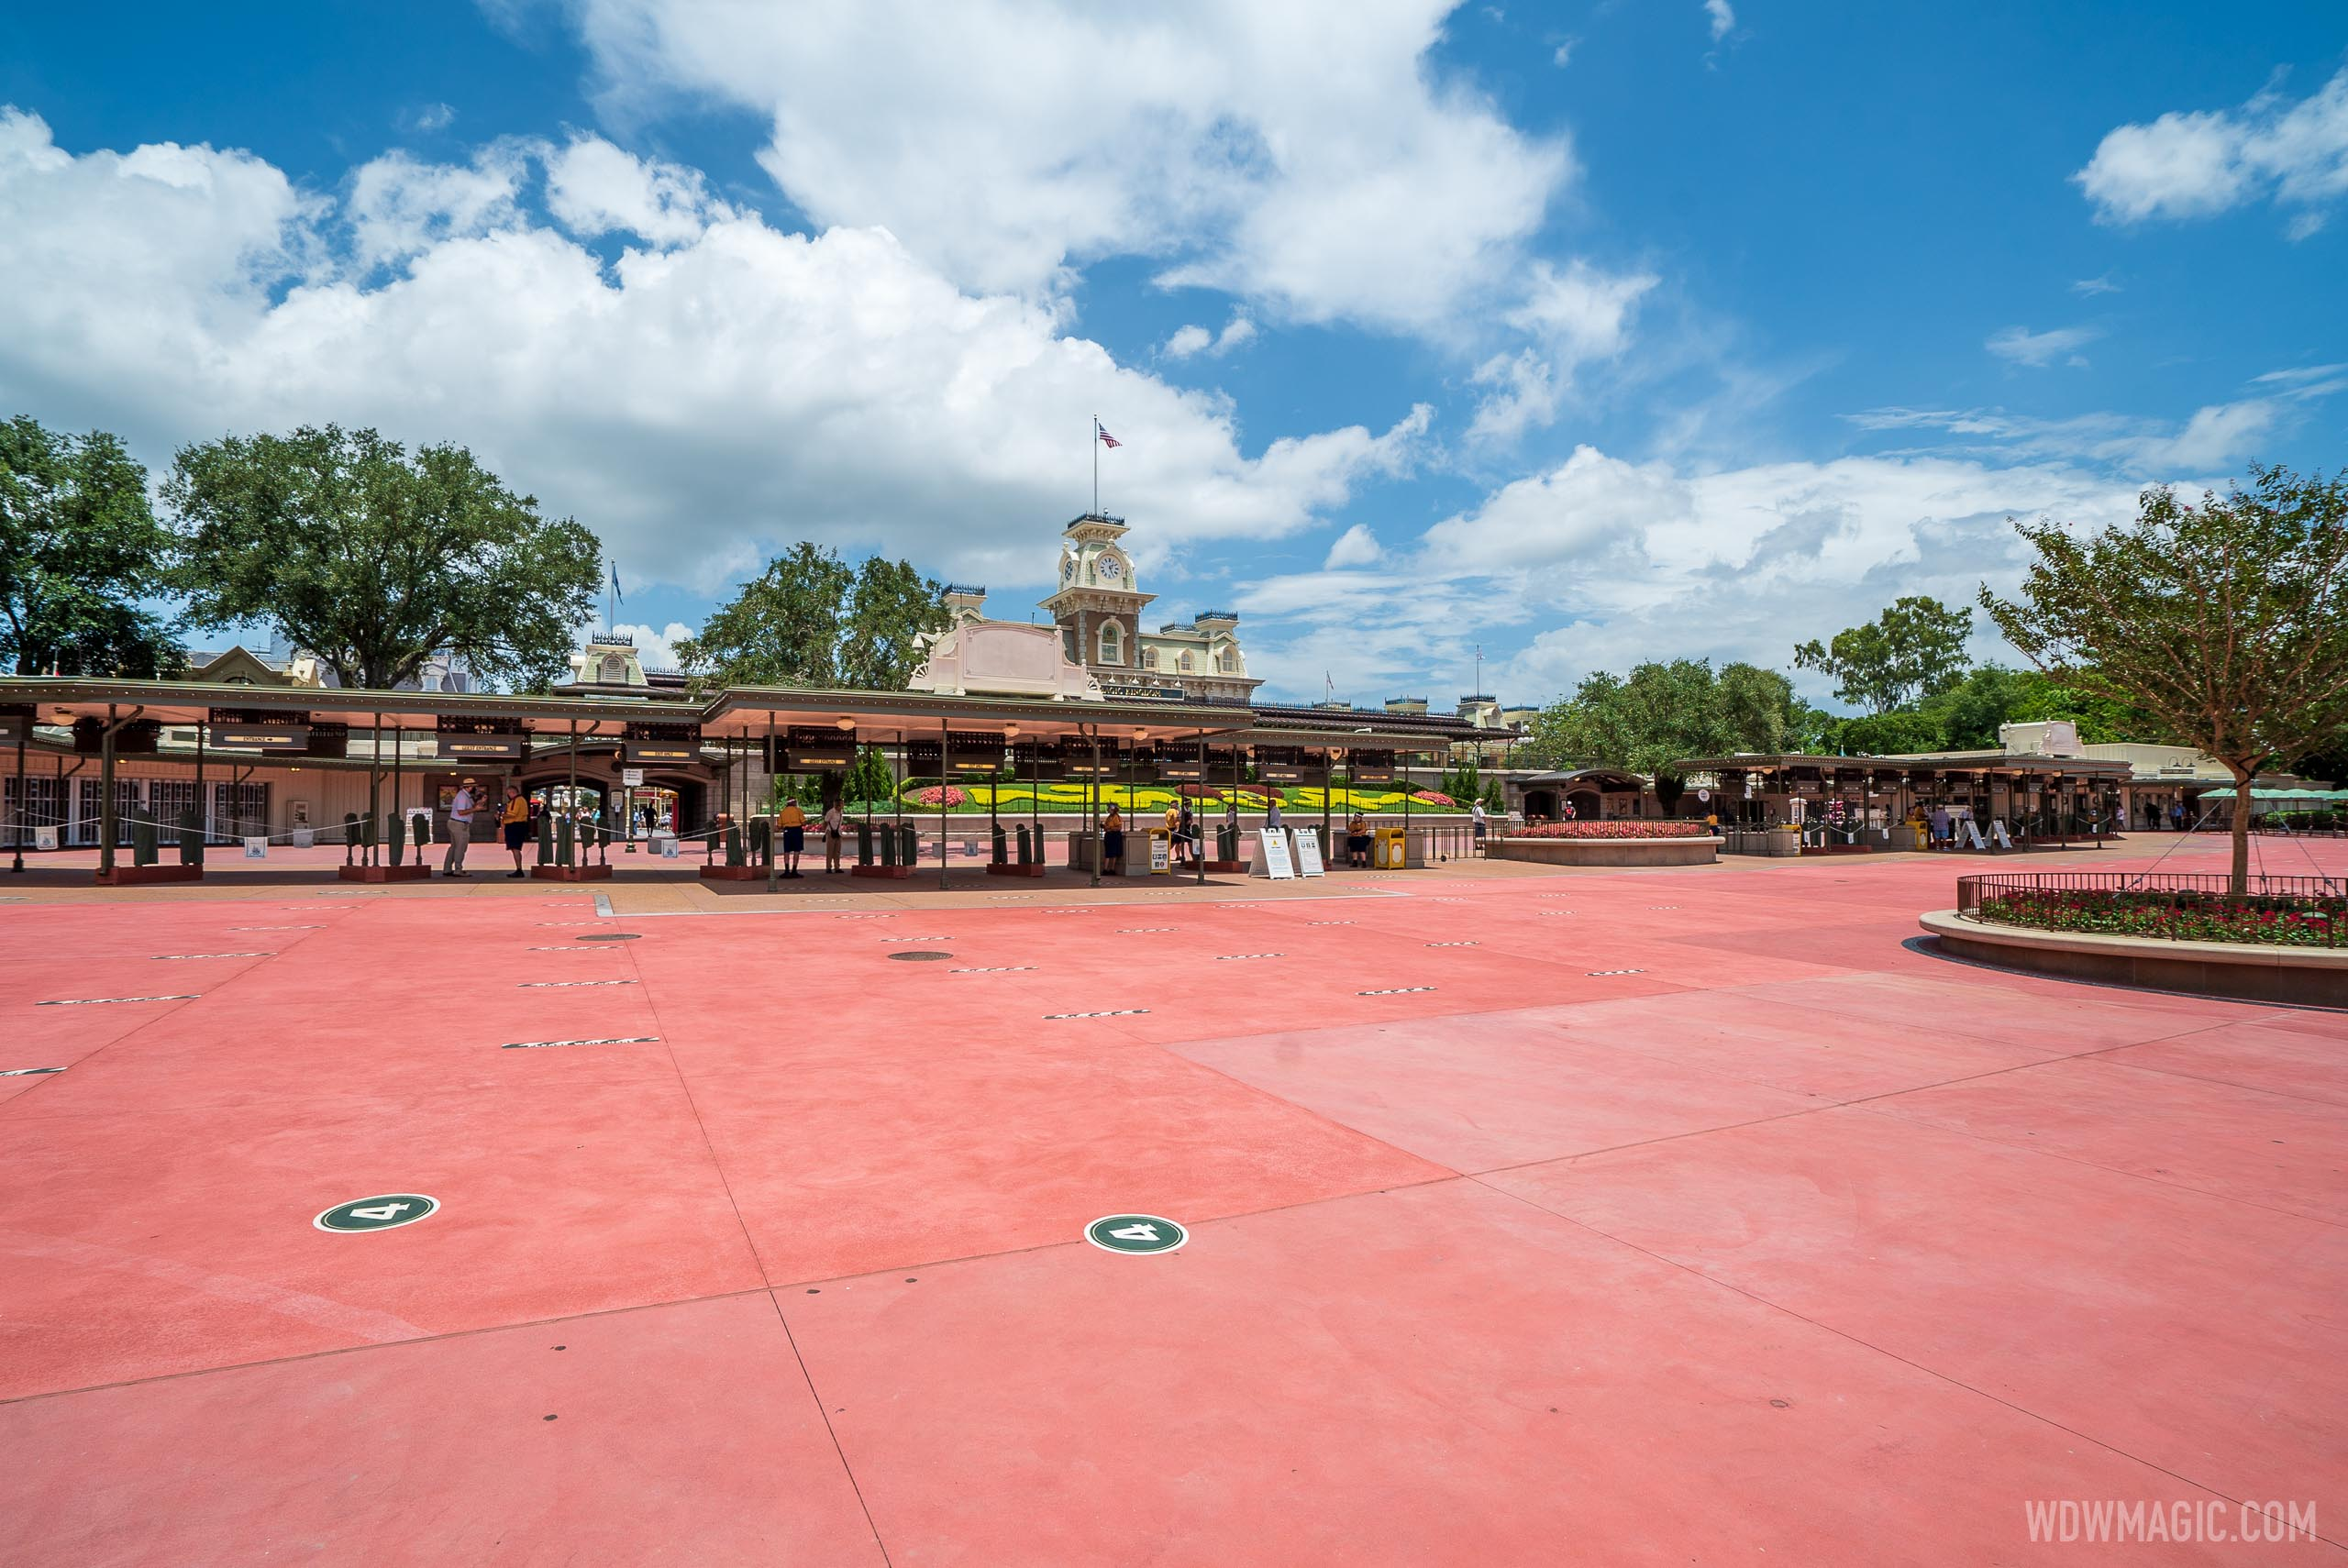 Walt Disney World began its phased reopening on July 11 2020